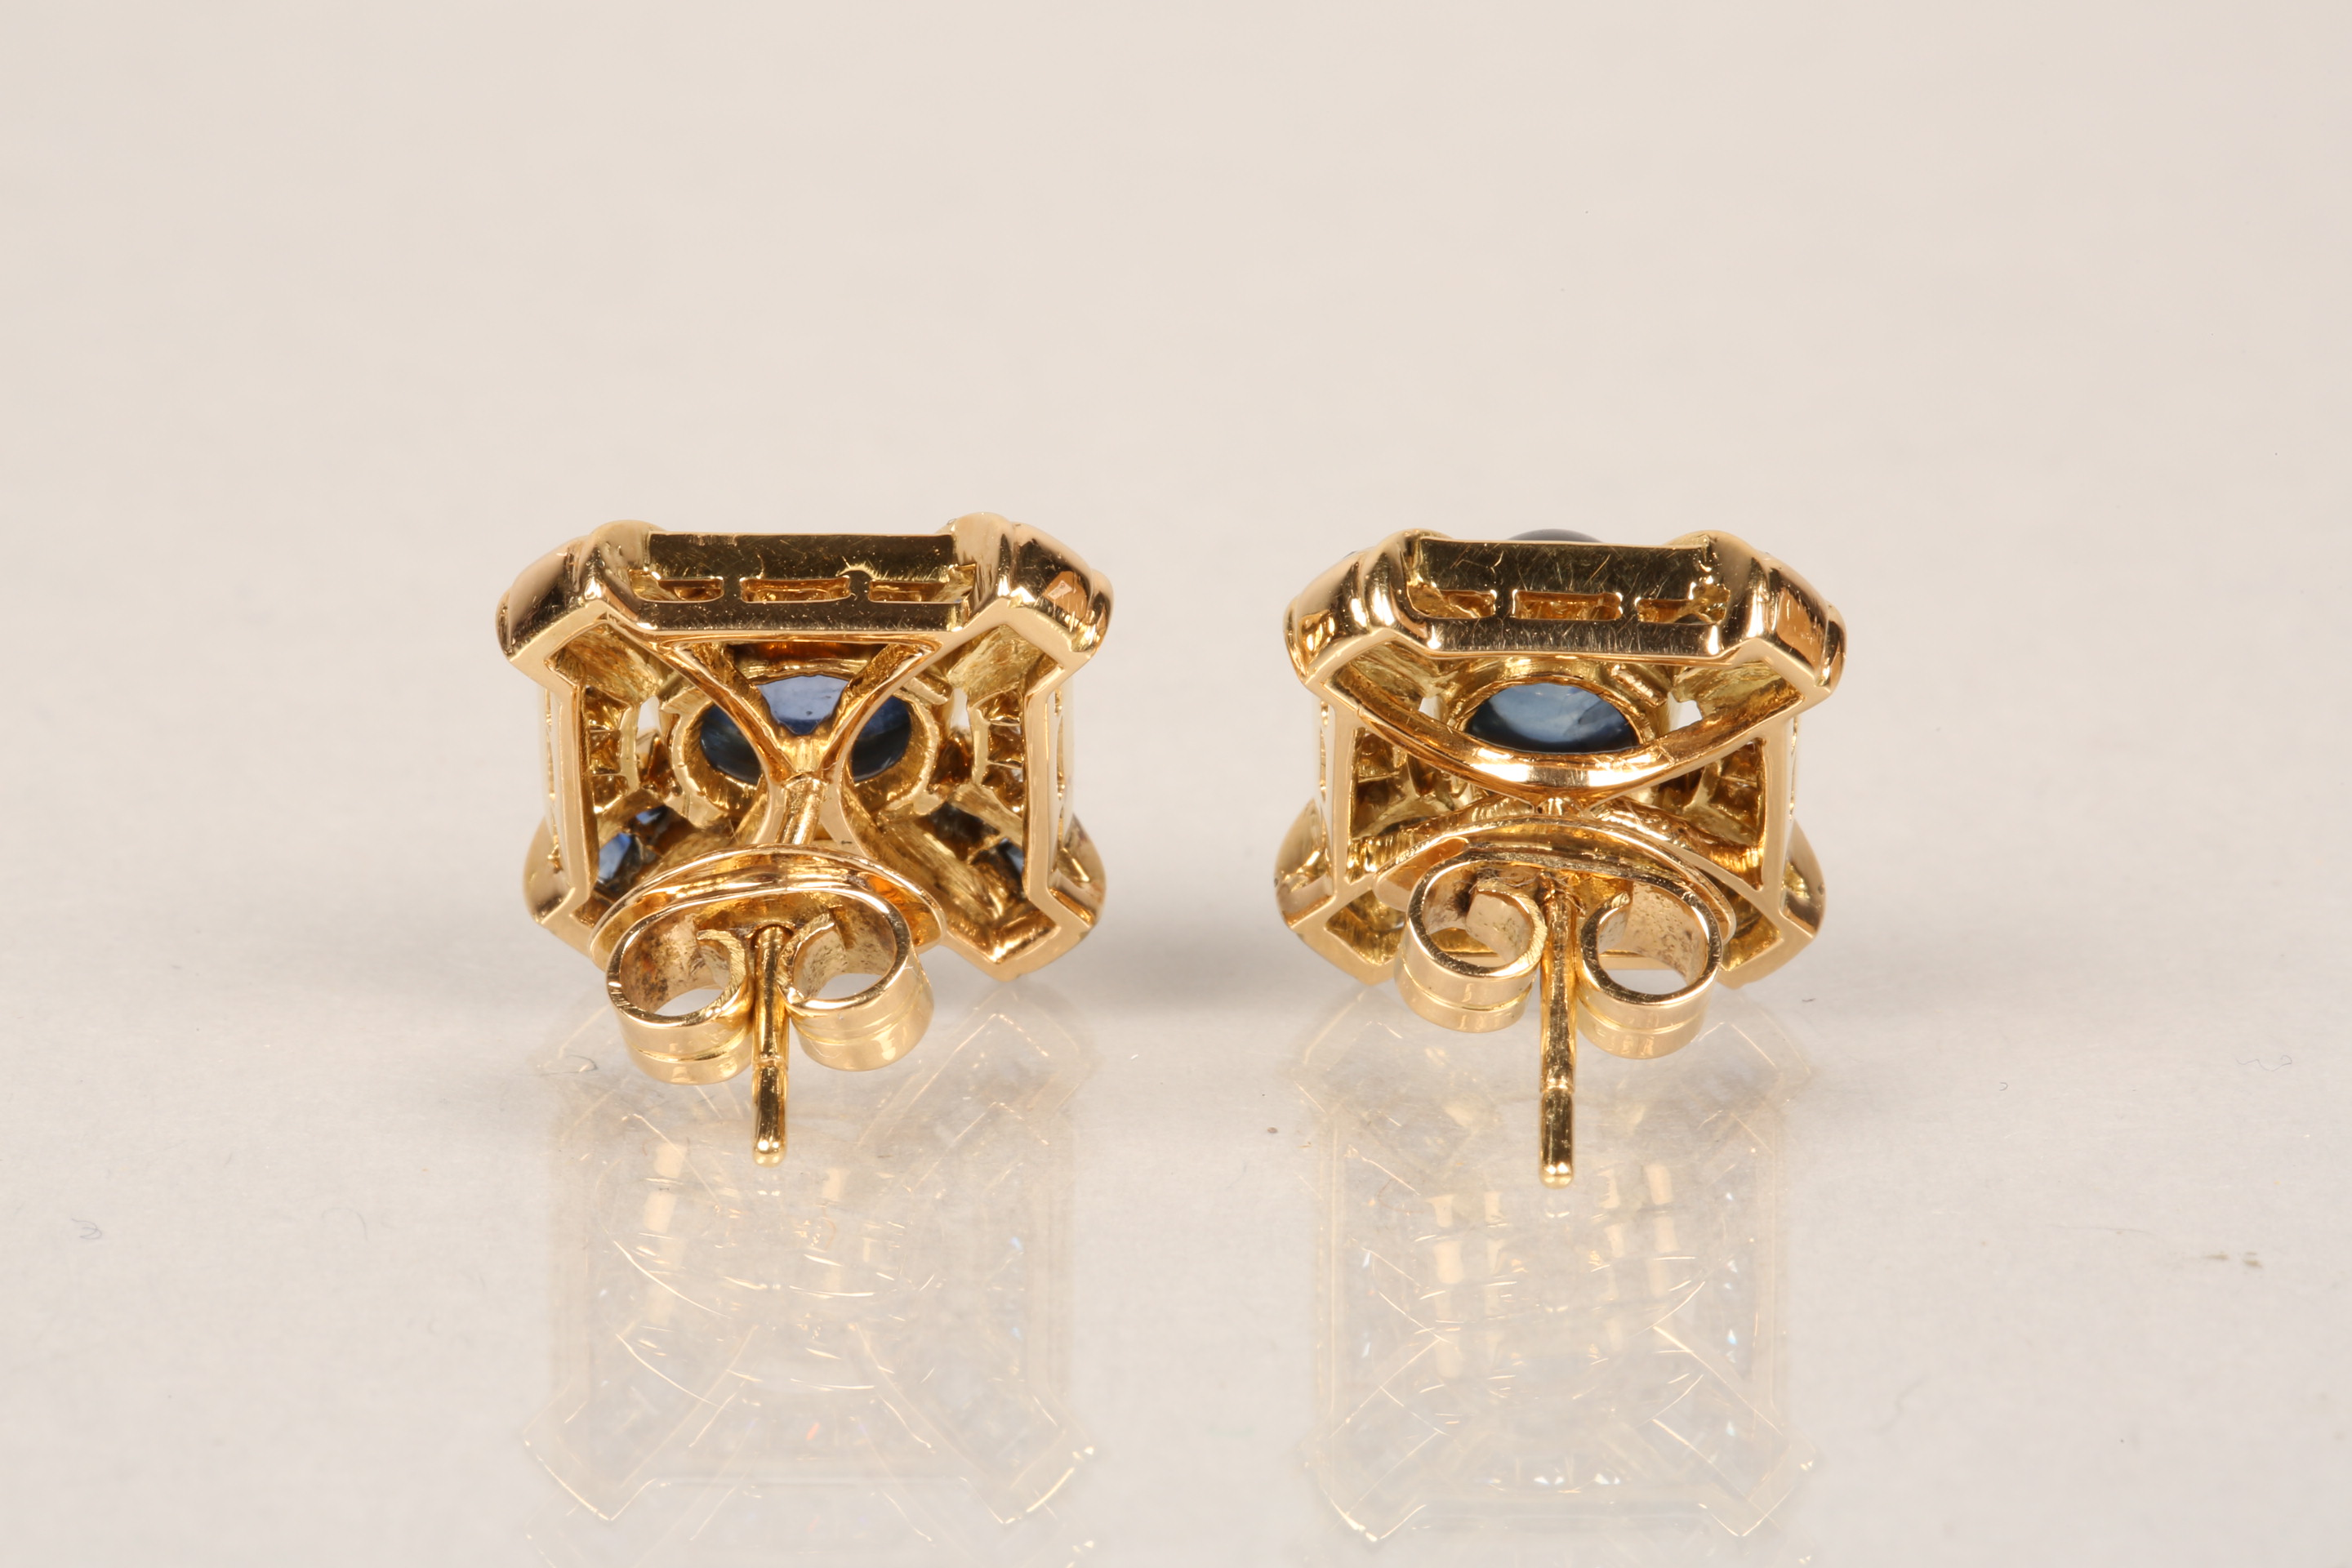 Boxed pair of 18 carat gold earrings, each set with a central blue sapphire cabochon surrounded by - Image 5 of 6